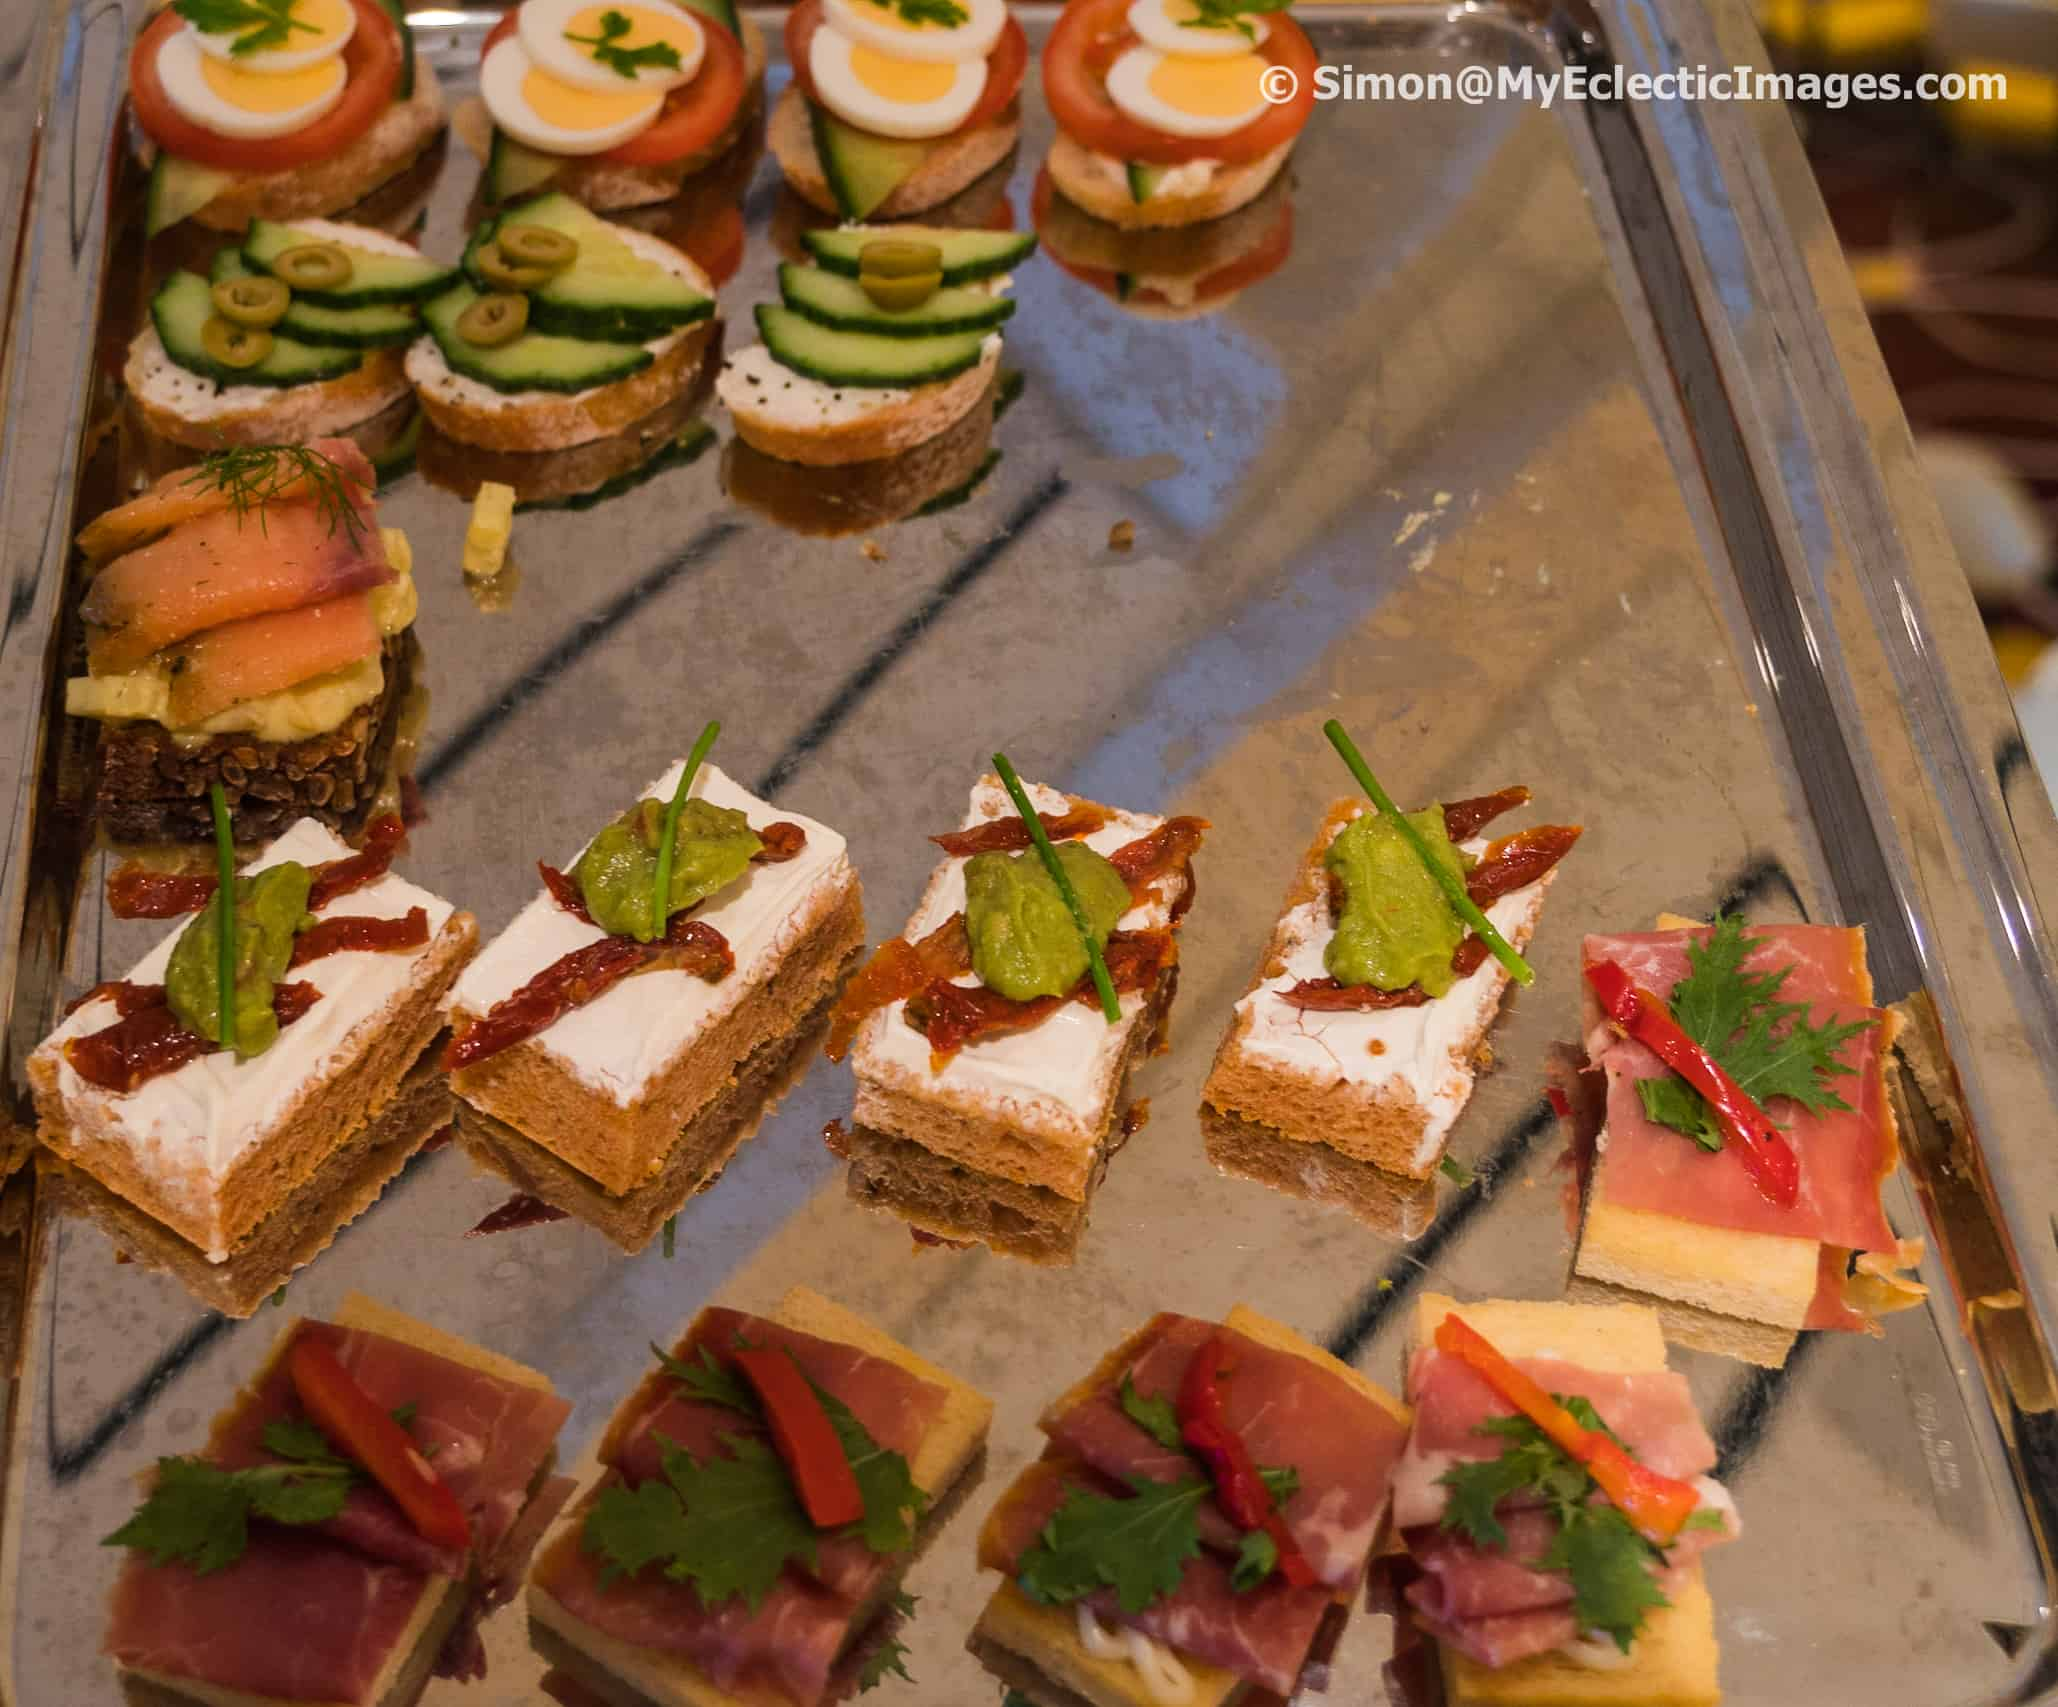 Sandwiches Served for Afternoon Tea Aboard the Nieuw Statendam